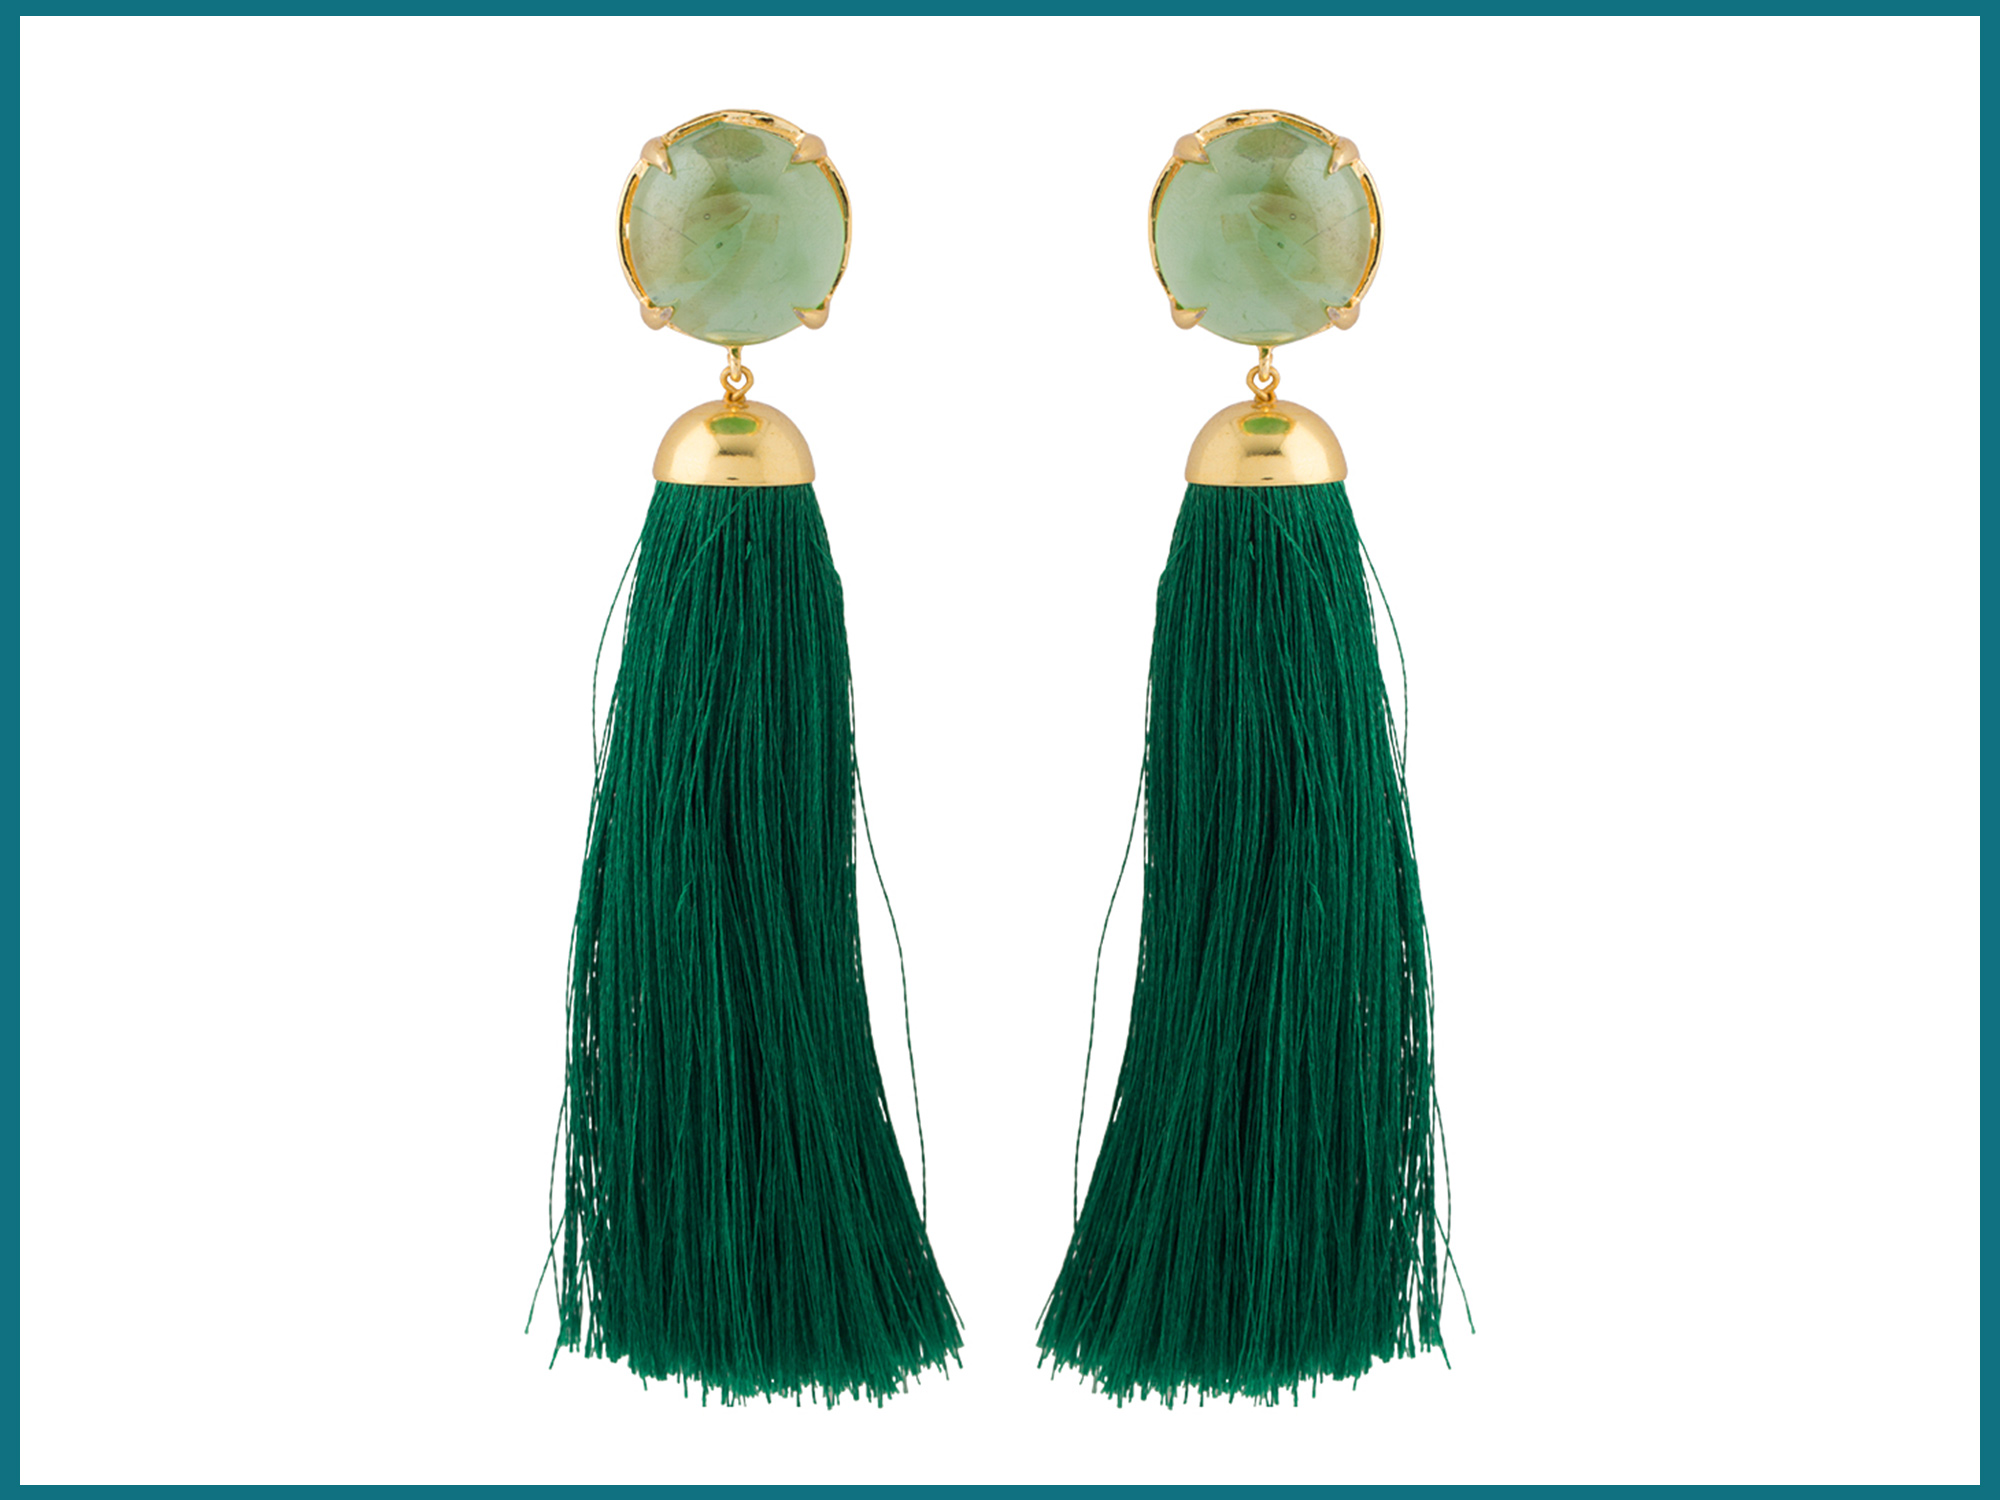 Green Stone Studded With Long Green Thread Tassels Danglers For Women